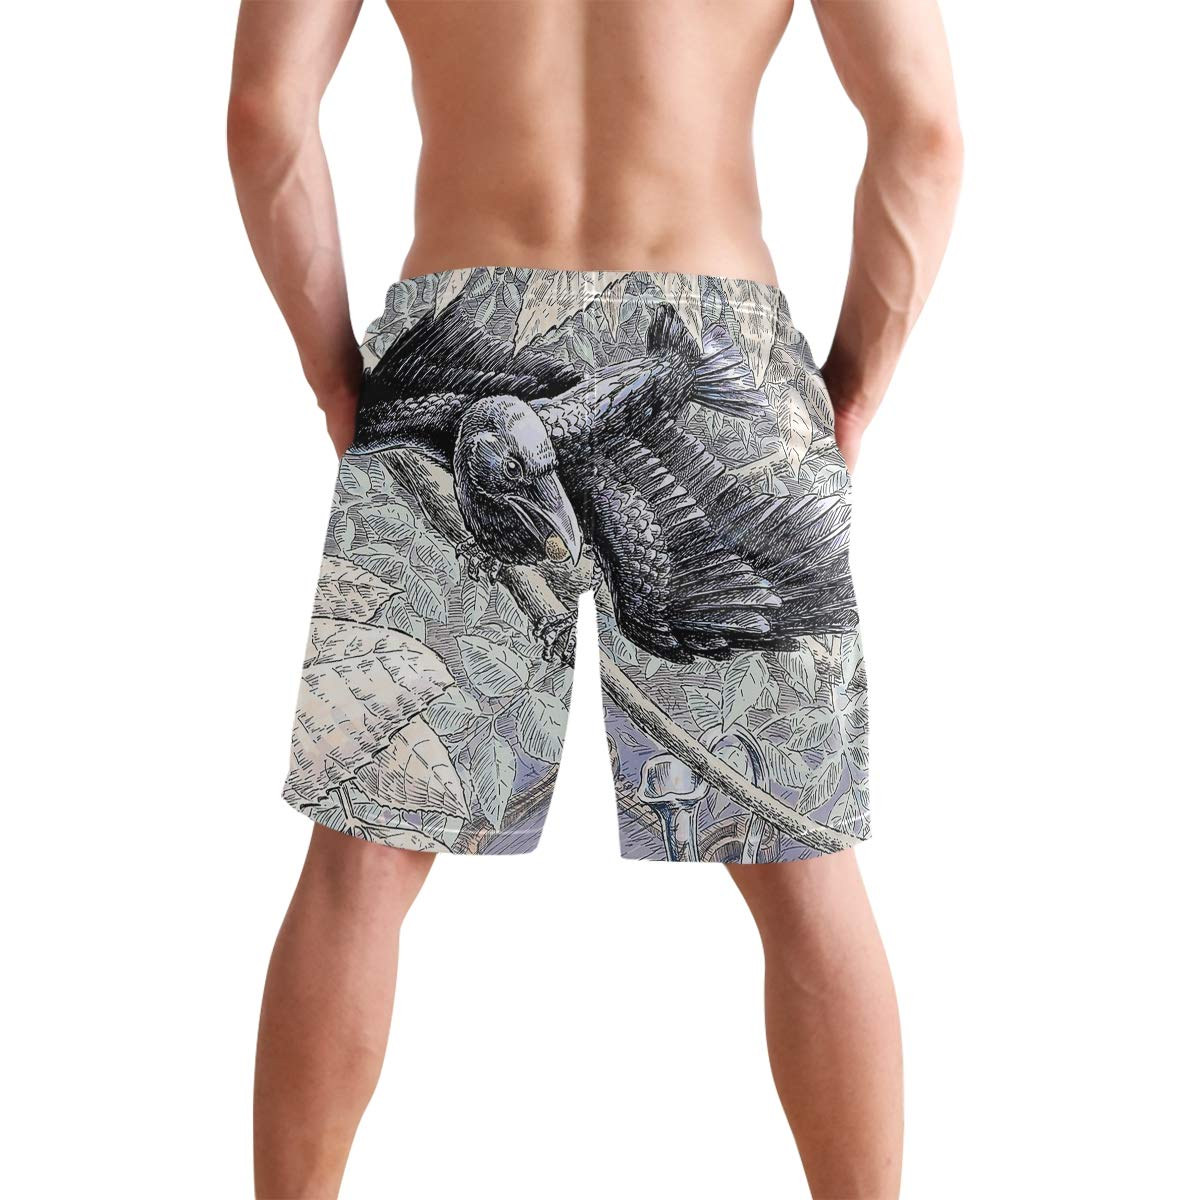 The Crow and Pitcher CBSwimTru Mens Casual Quick Dry Drawstring Printed Swimsuit Beach Board Shorts